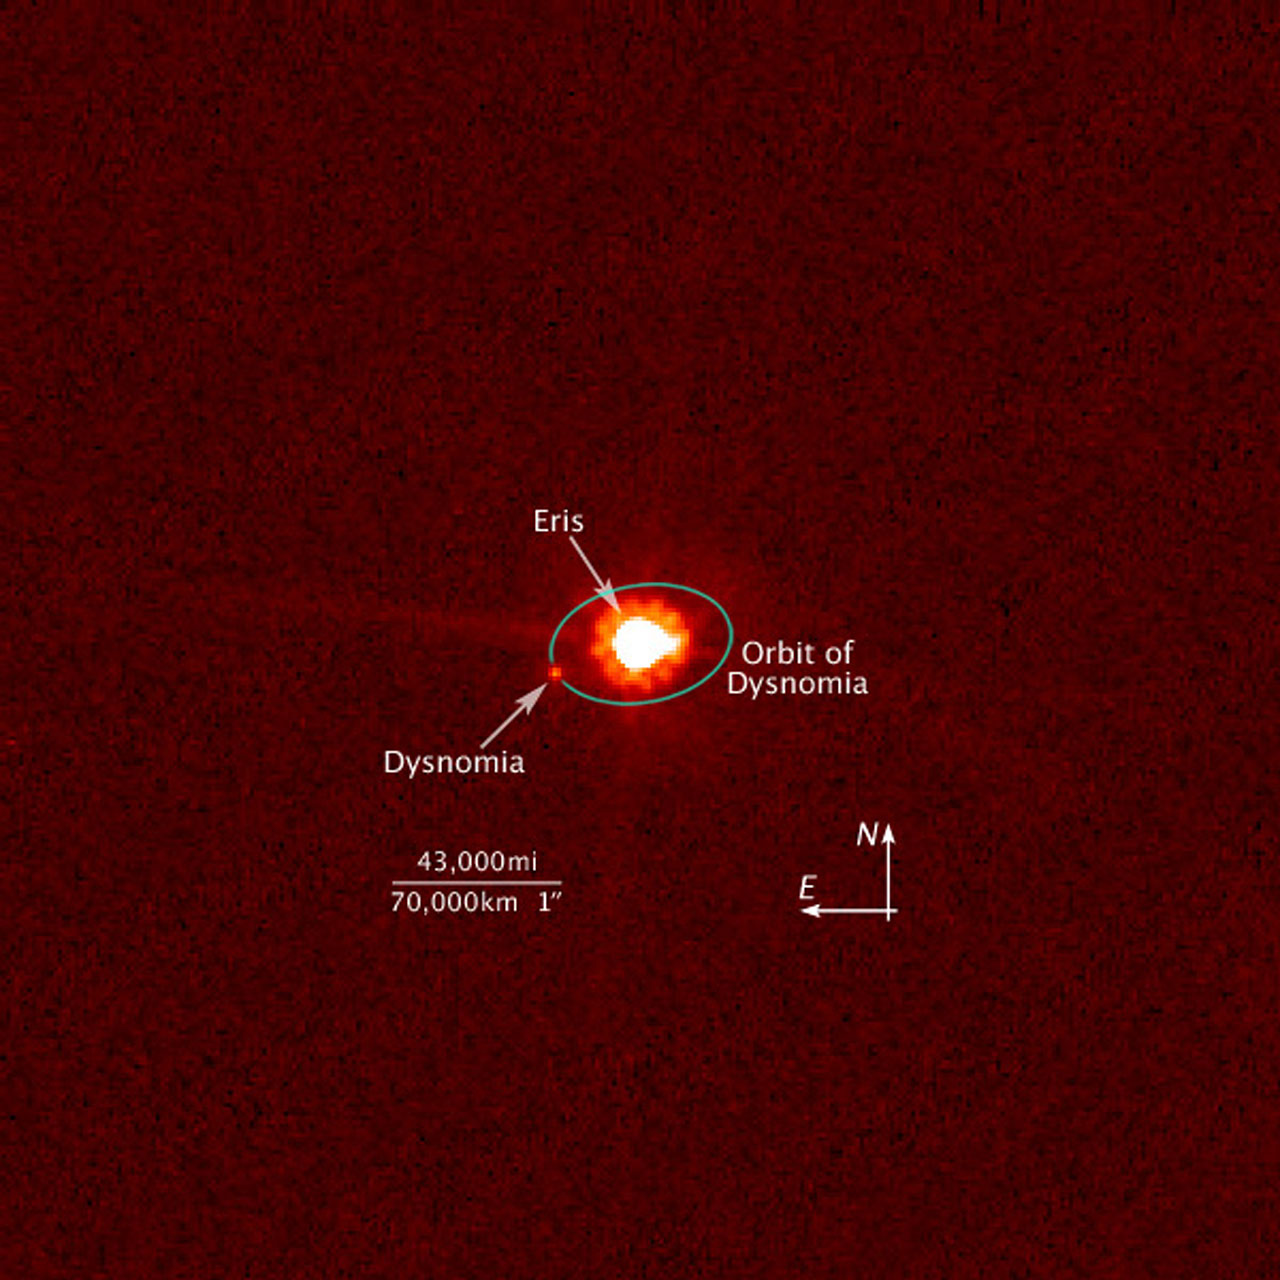 Hubble View of Eris and Dysnomia (Annotated)